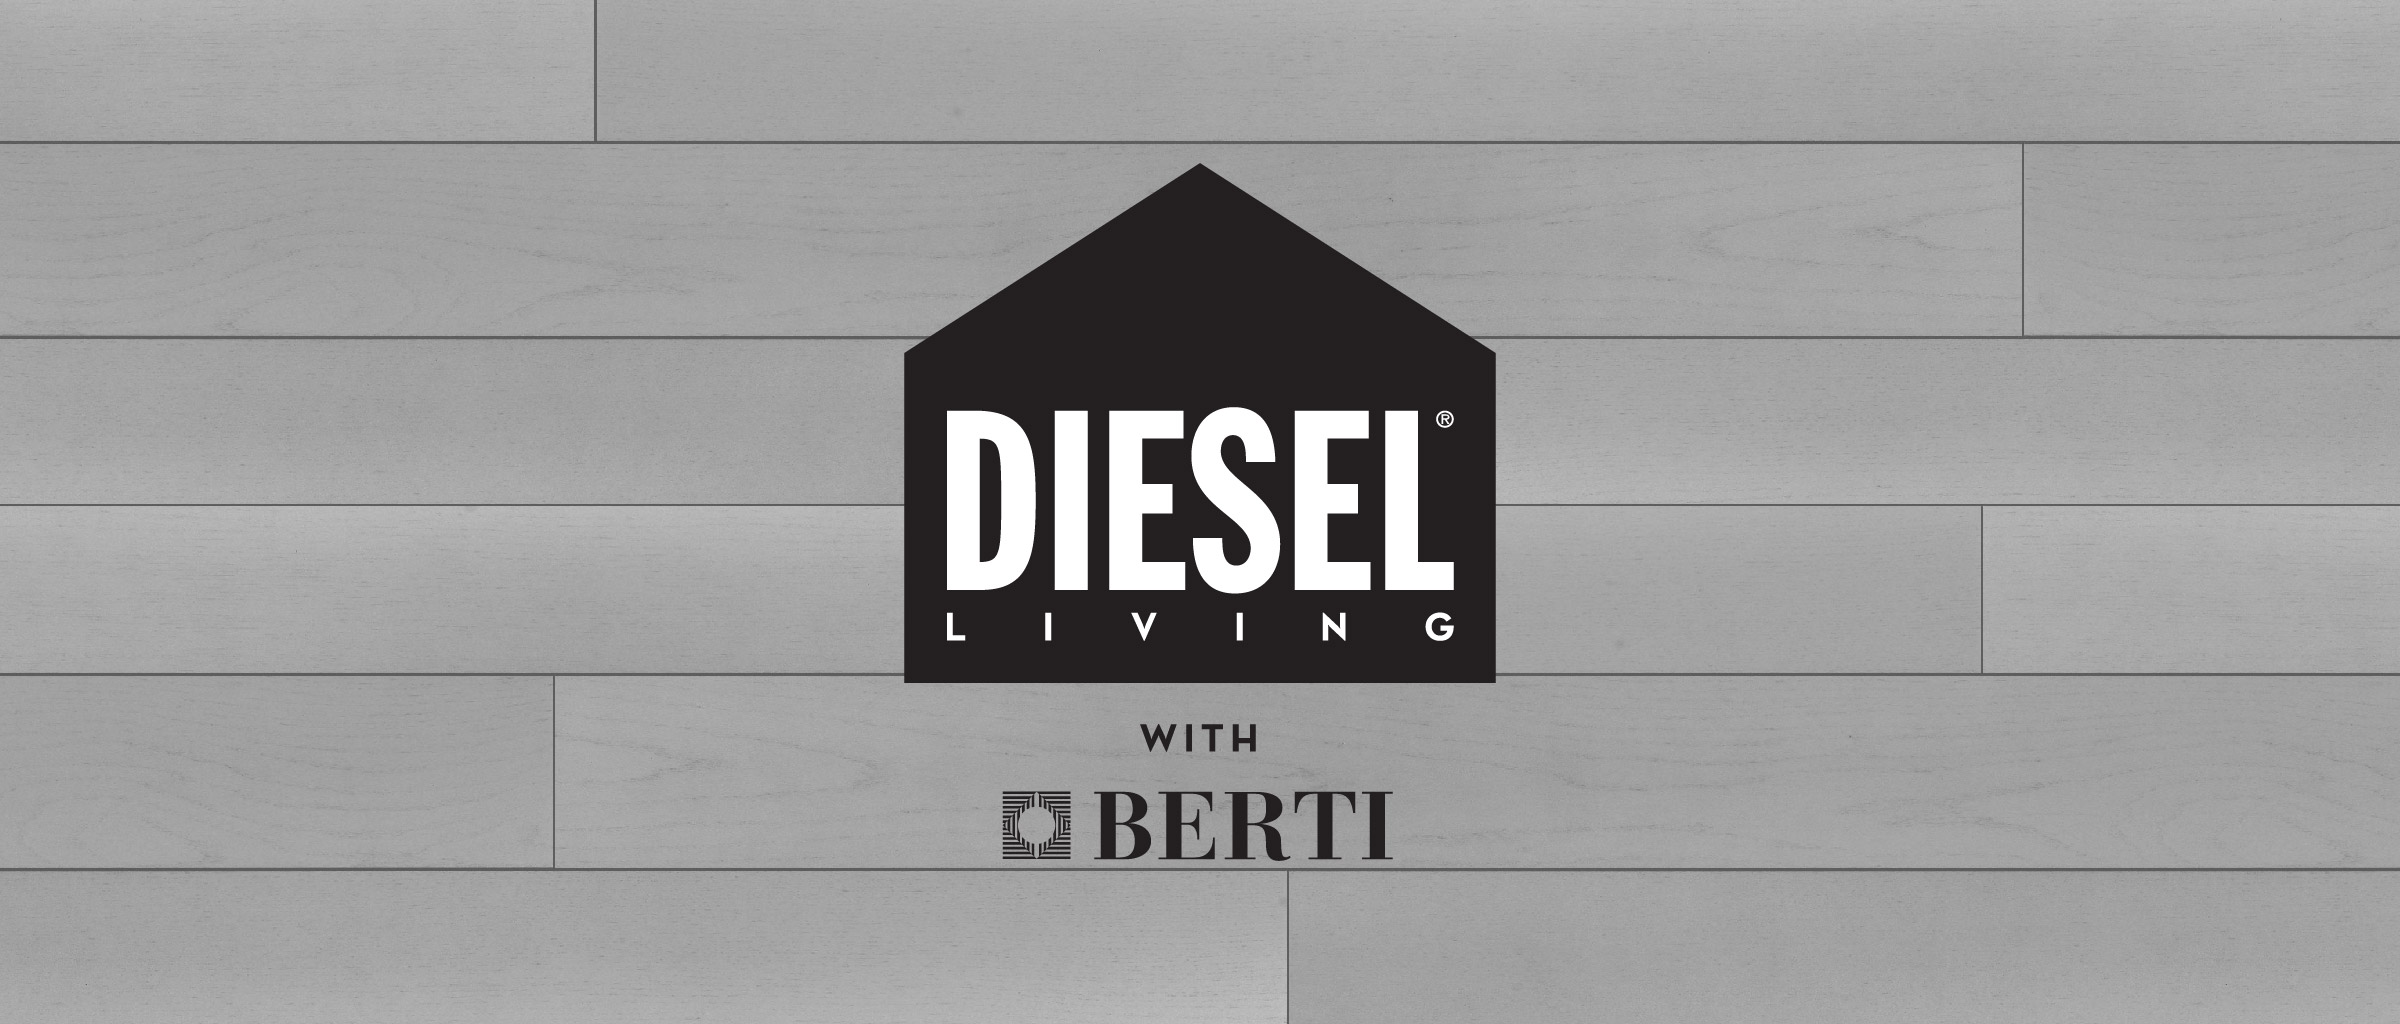 frame diesel contract